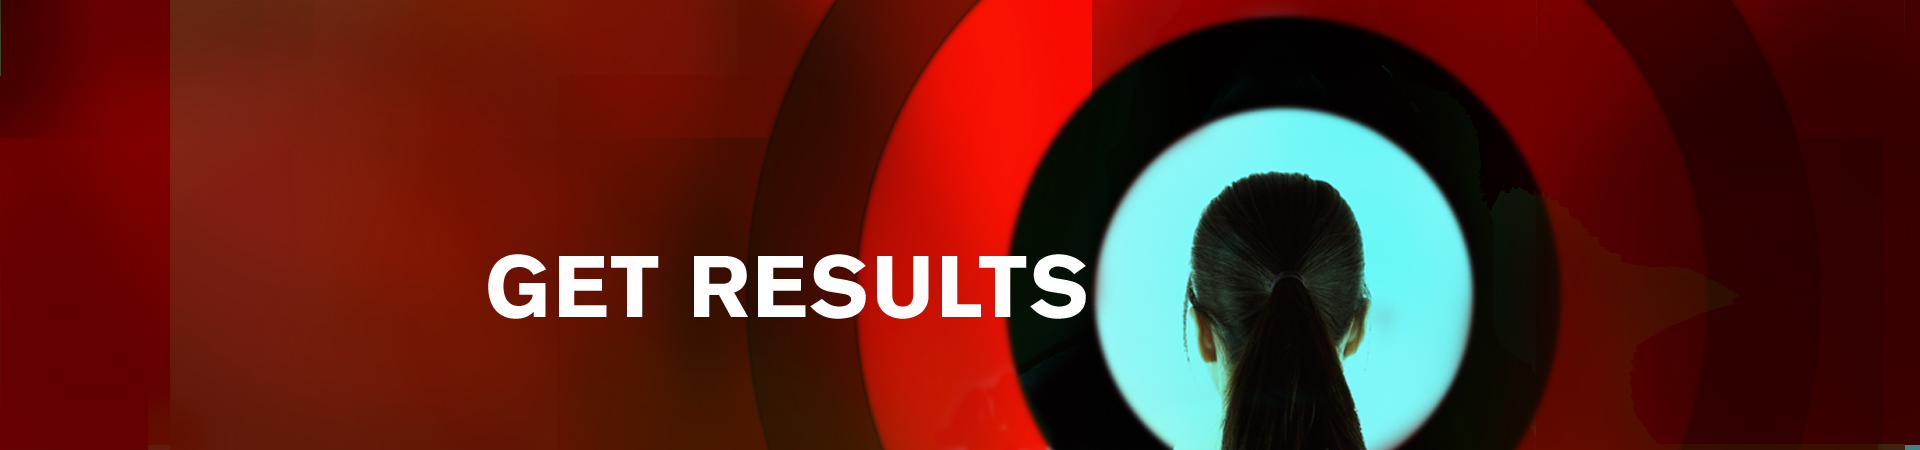 Get Results graphic red